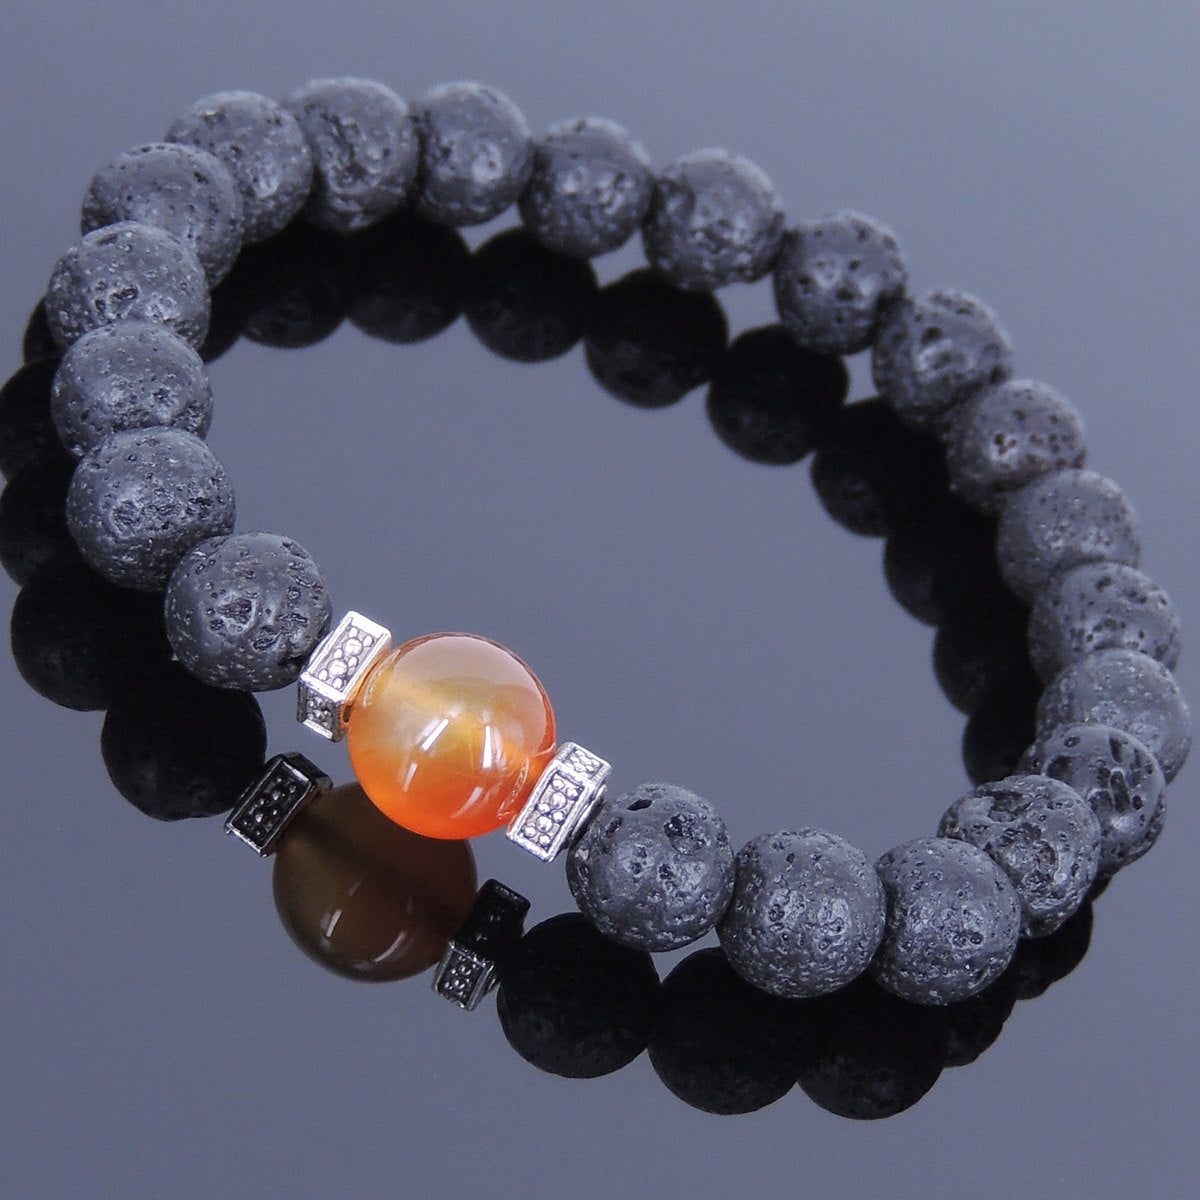 Red Carnelian & Lava Rock Healing Stone Bracelet with Tibetan Silver Square Spacers - Handmade by Gem and Silver TSB013